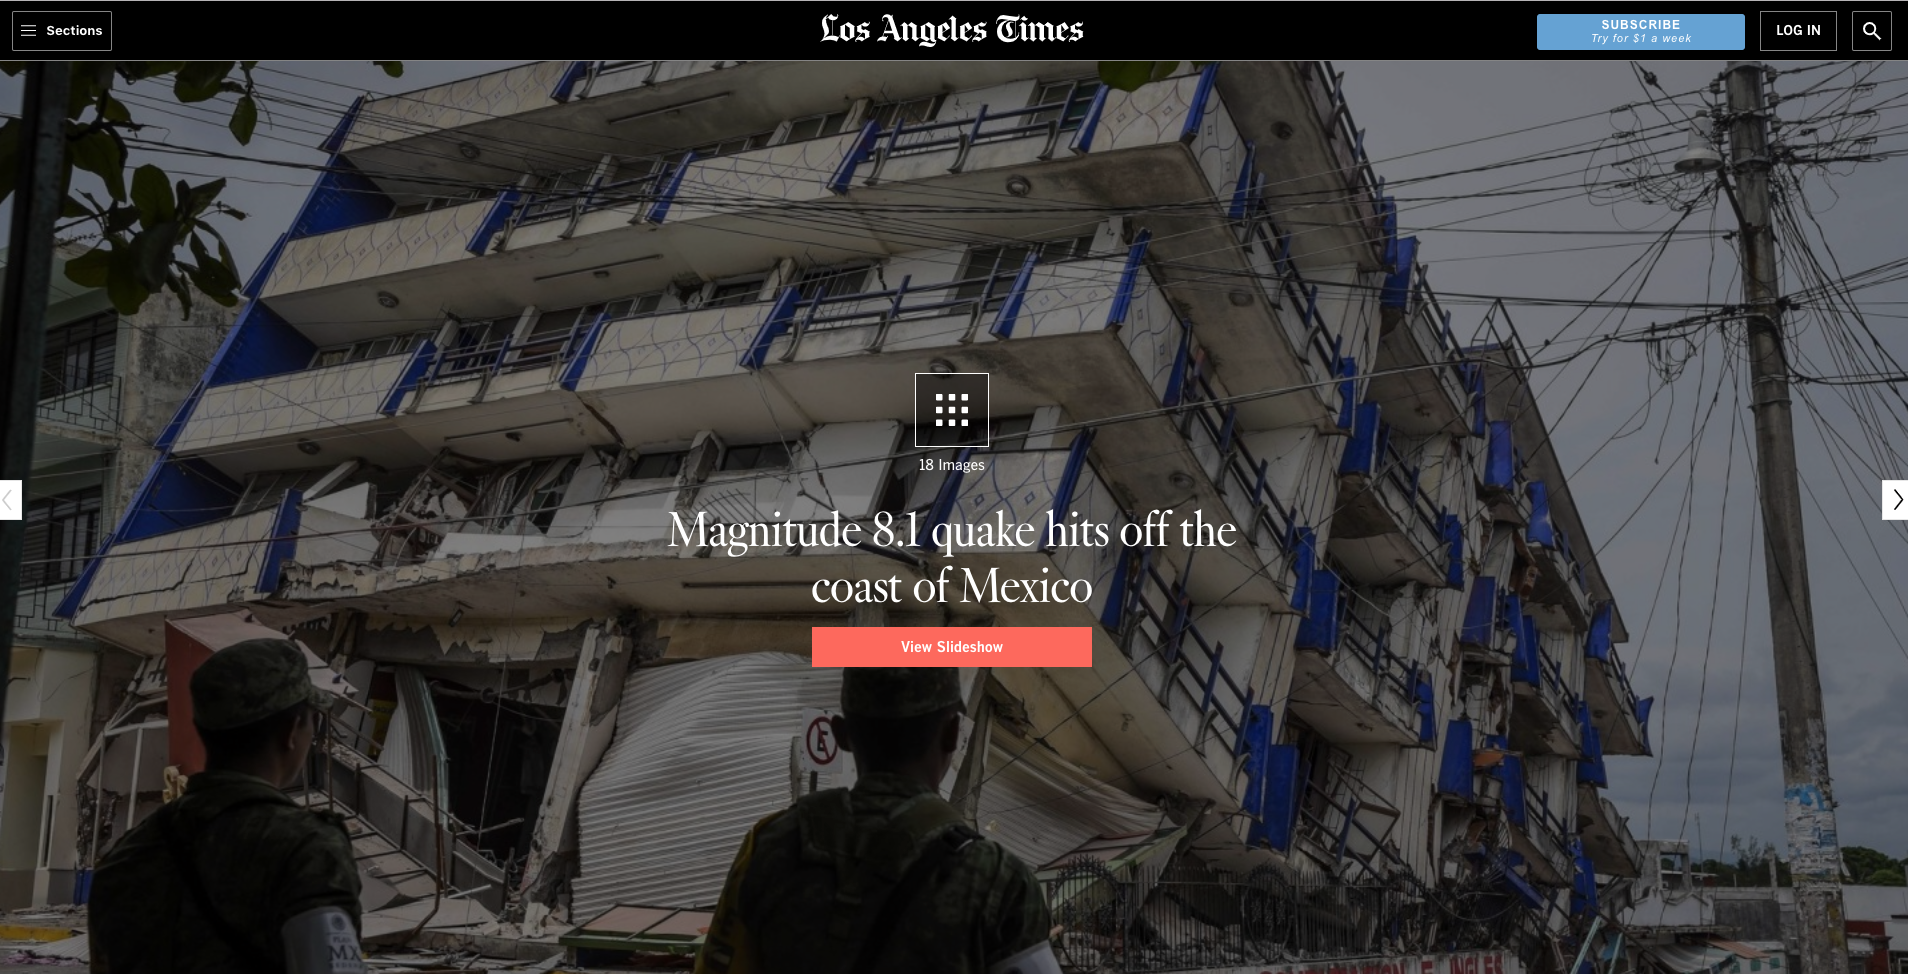  https://www.latimes.com/world/la-fg-mexico-earthquake-pictures-20170908-photogallery.html 